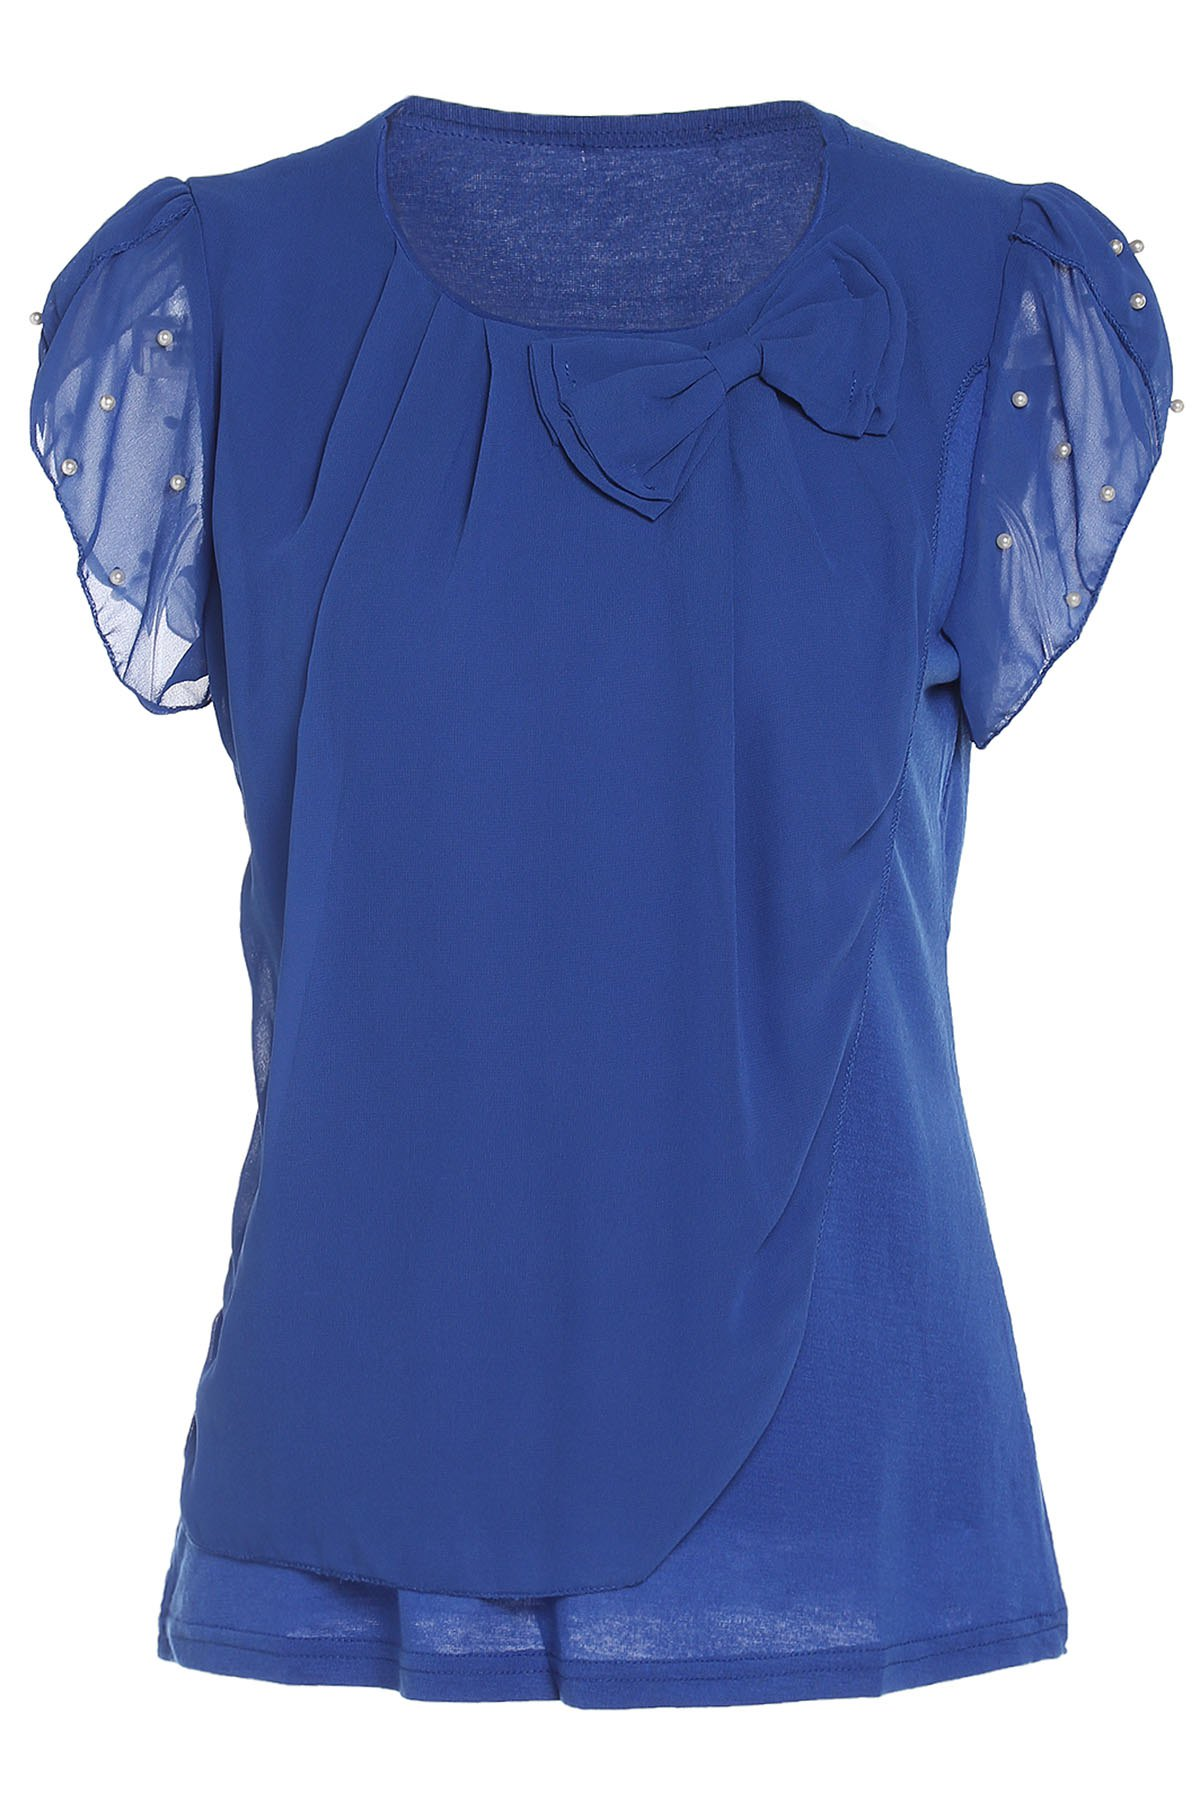 Stylish Women's Scoop Neck Bowknot Embellished Beaded Chiffon Blouse - BLUE XL